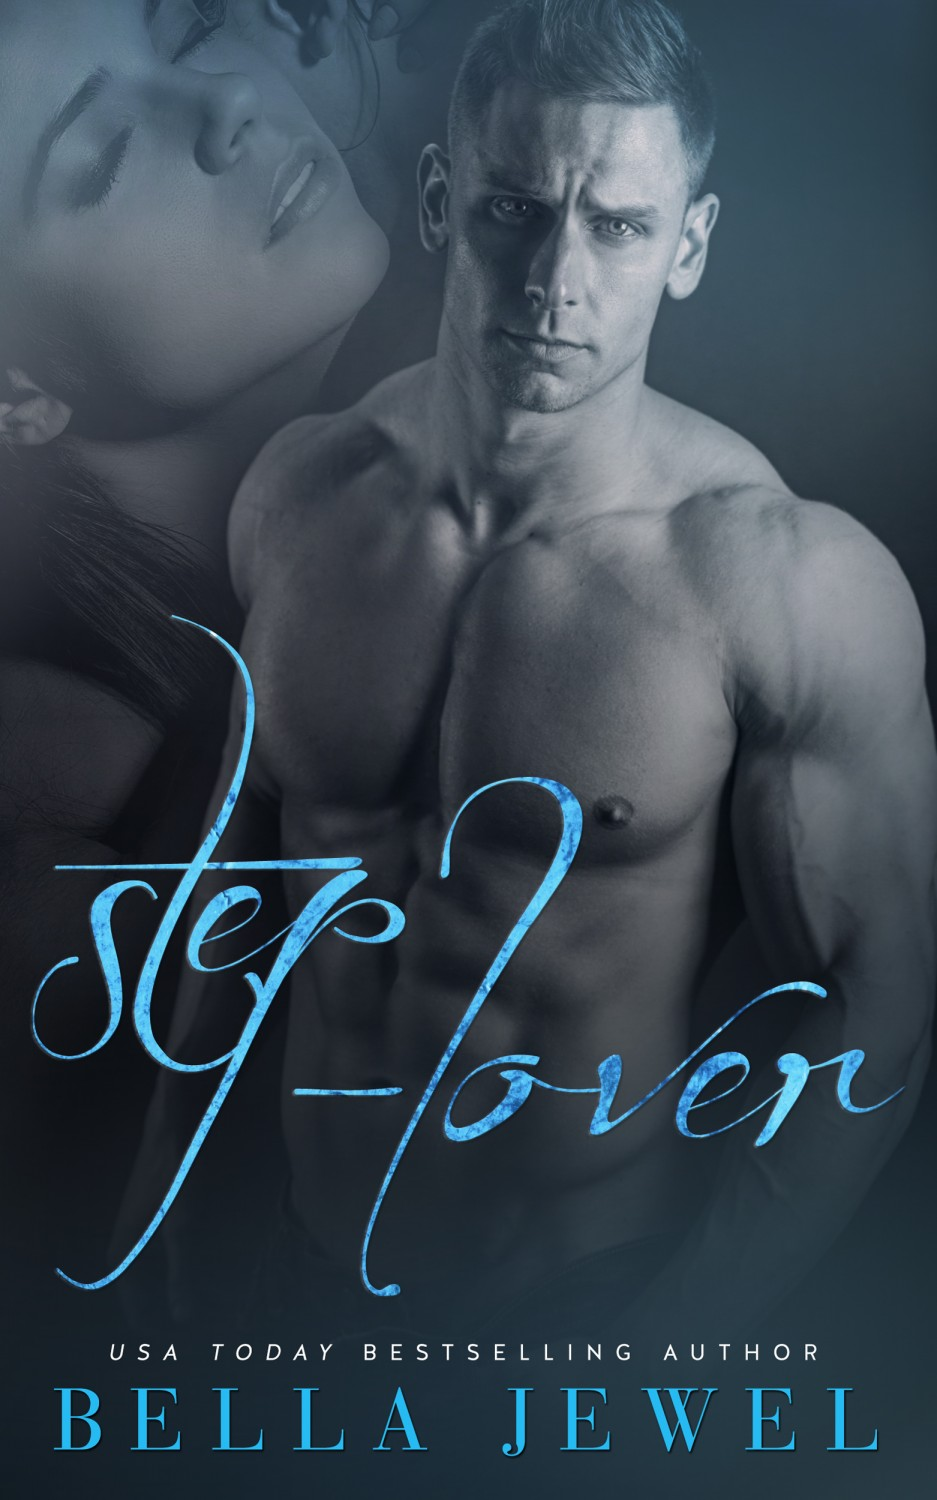 STEP-LOVER BELLA JEWEL AMAZON KINDLE EBOOK COVER